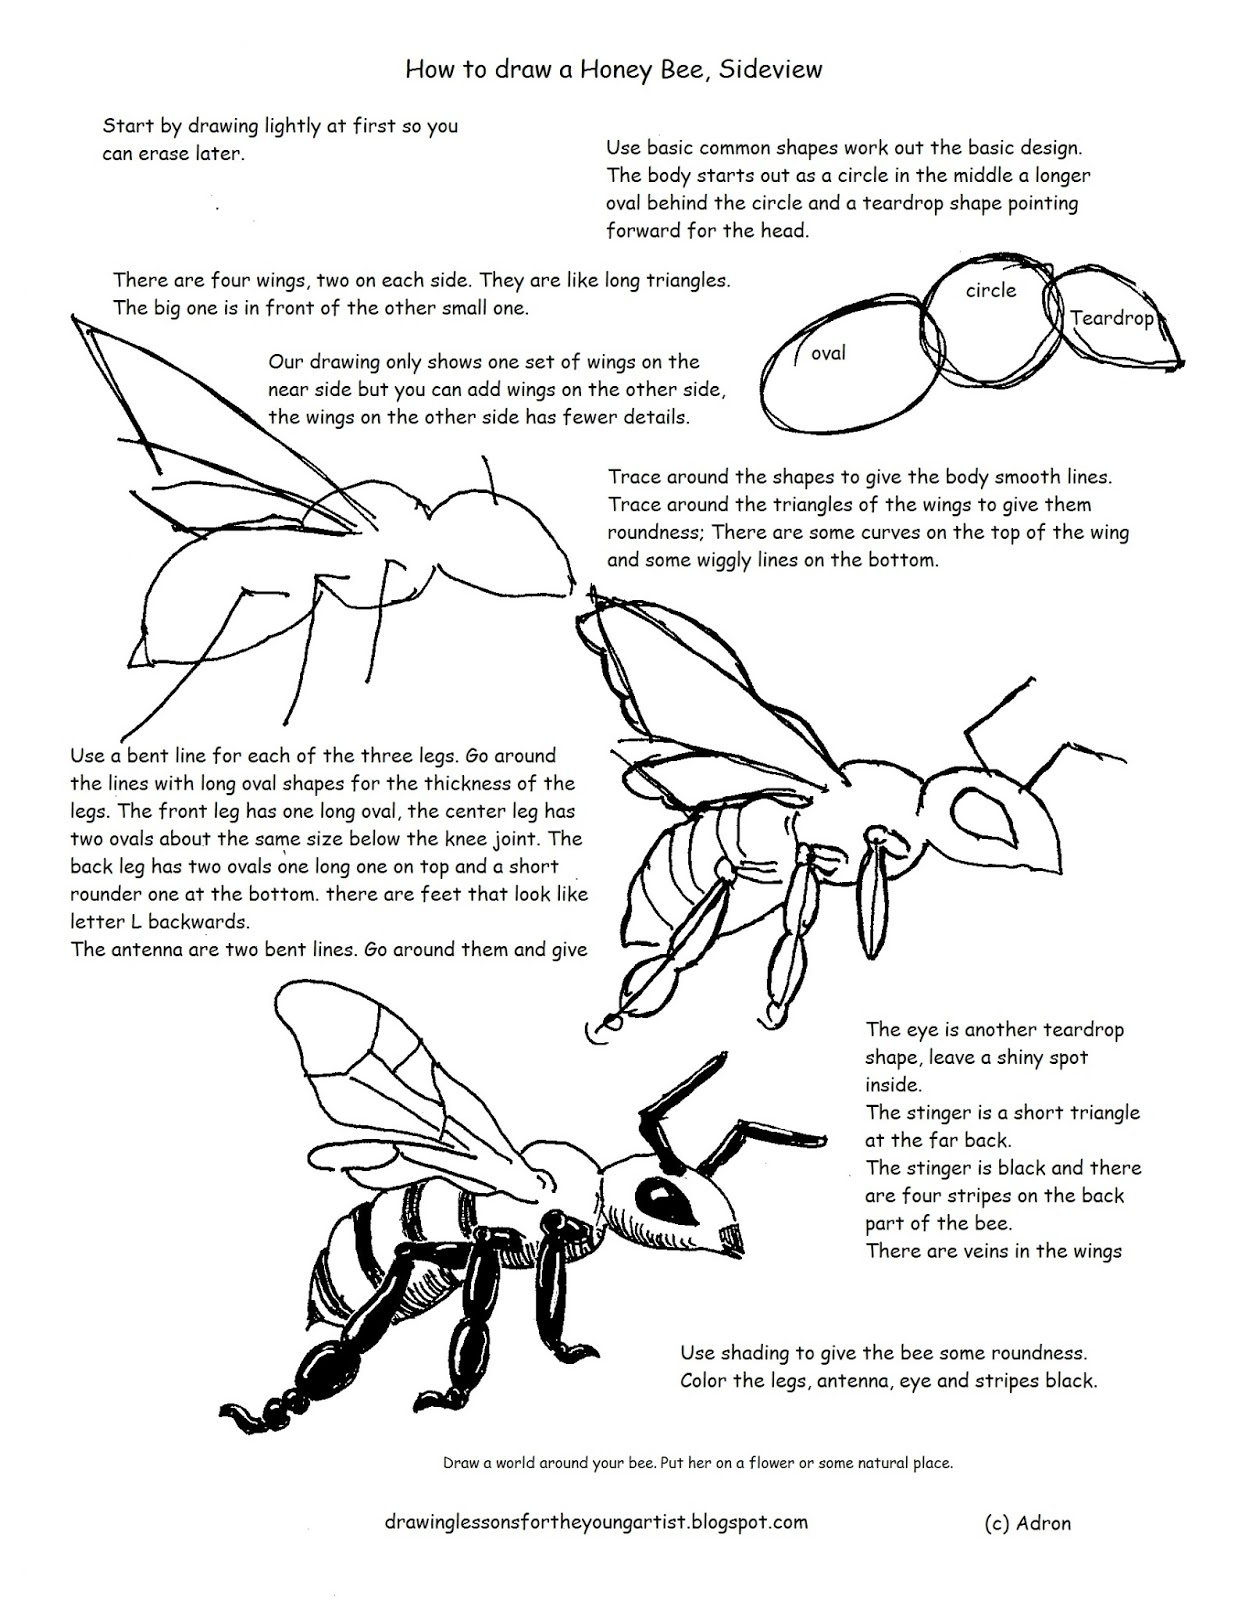 worksheet Drawing Worksheets how to draw worksheets for the young artist a honey honeybee printable worksheet